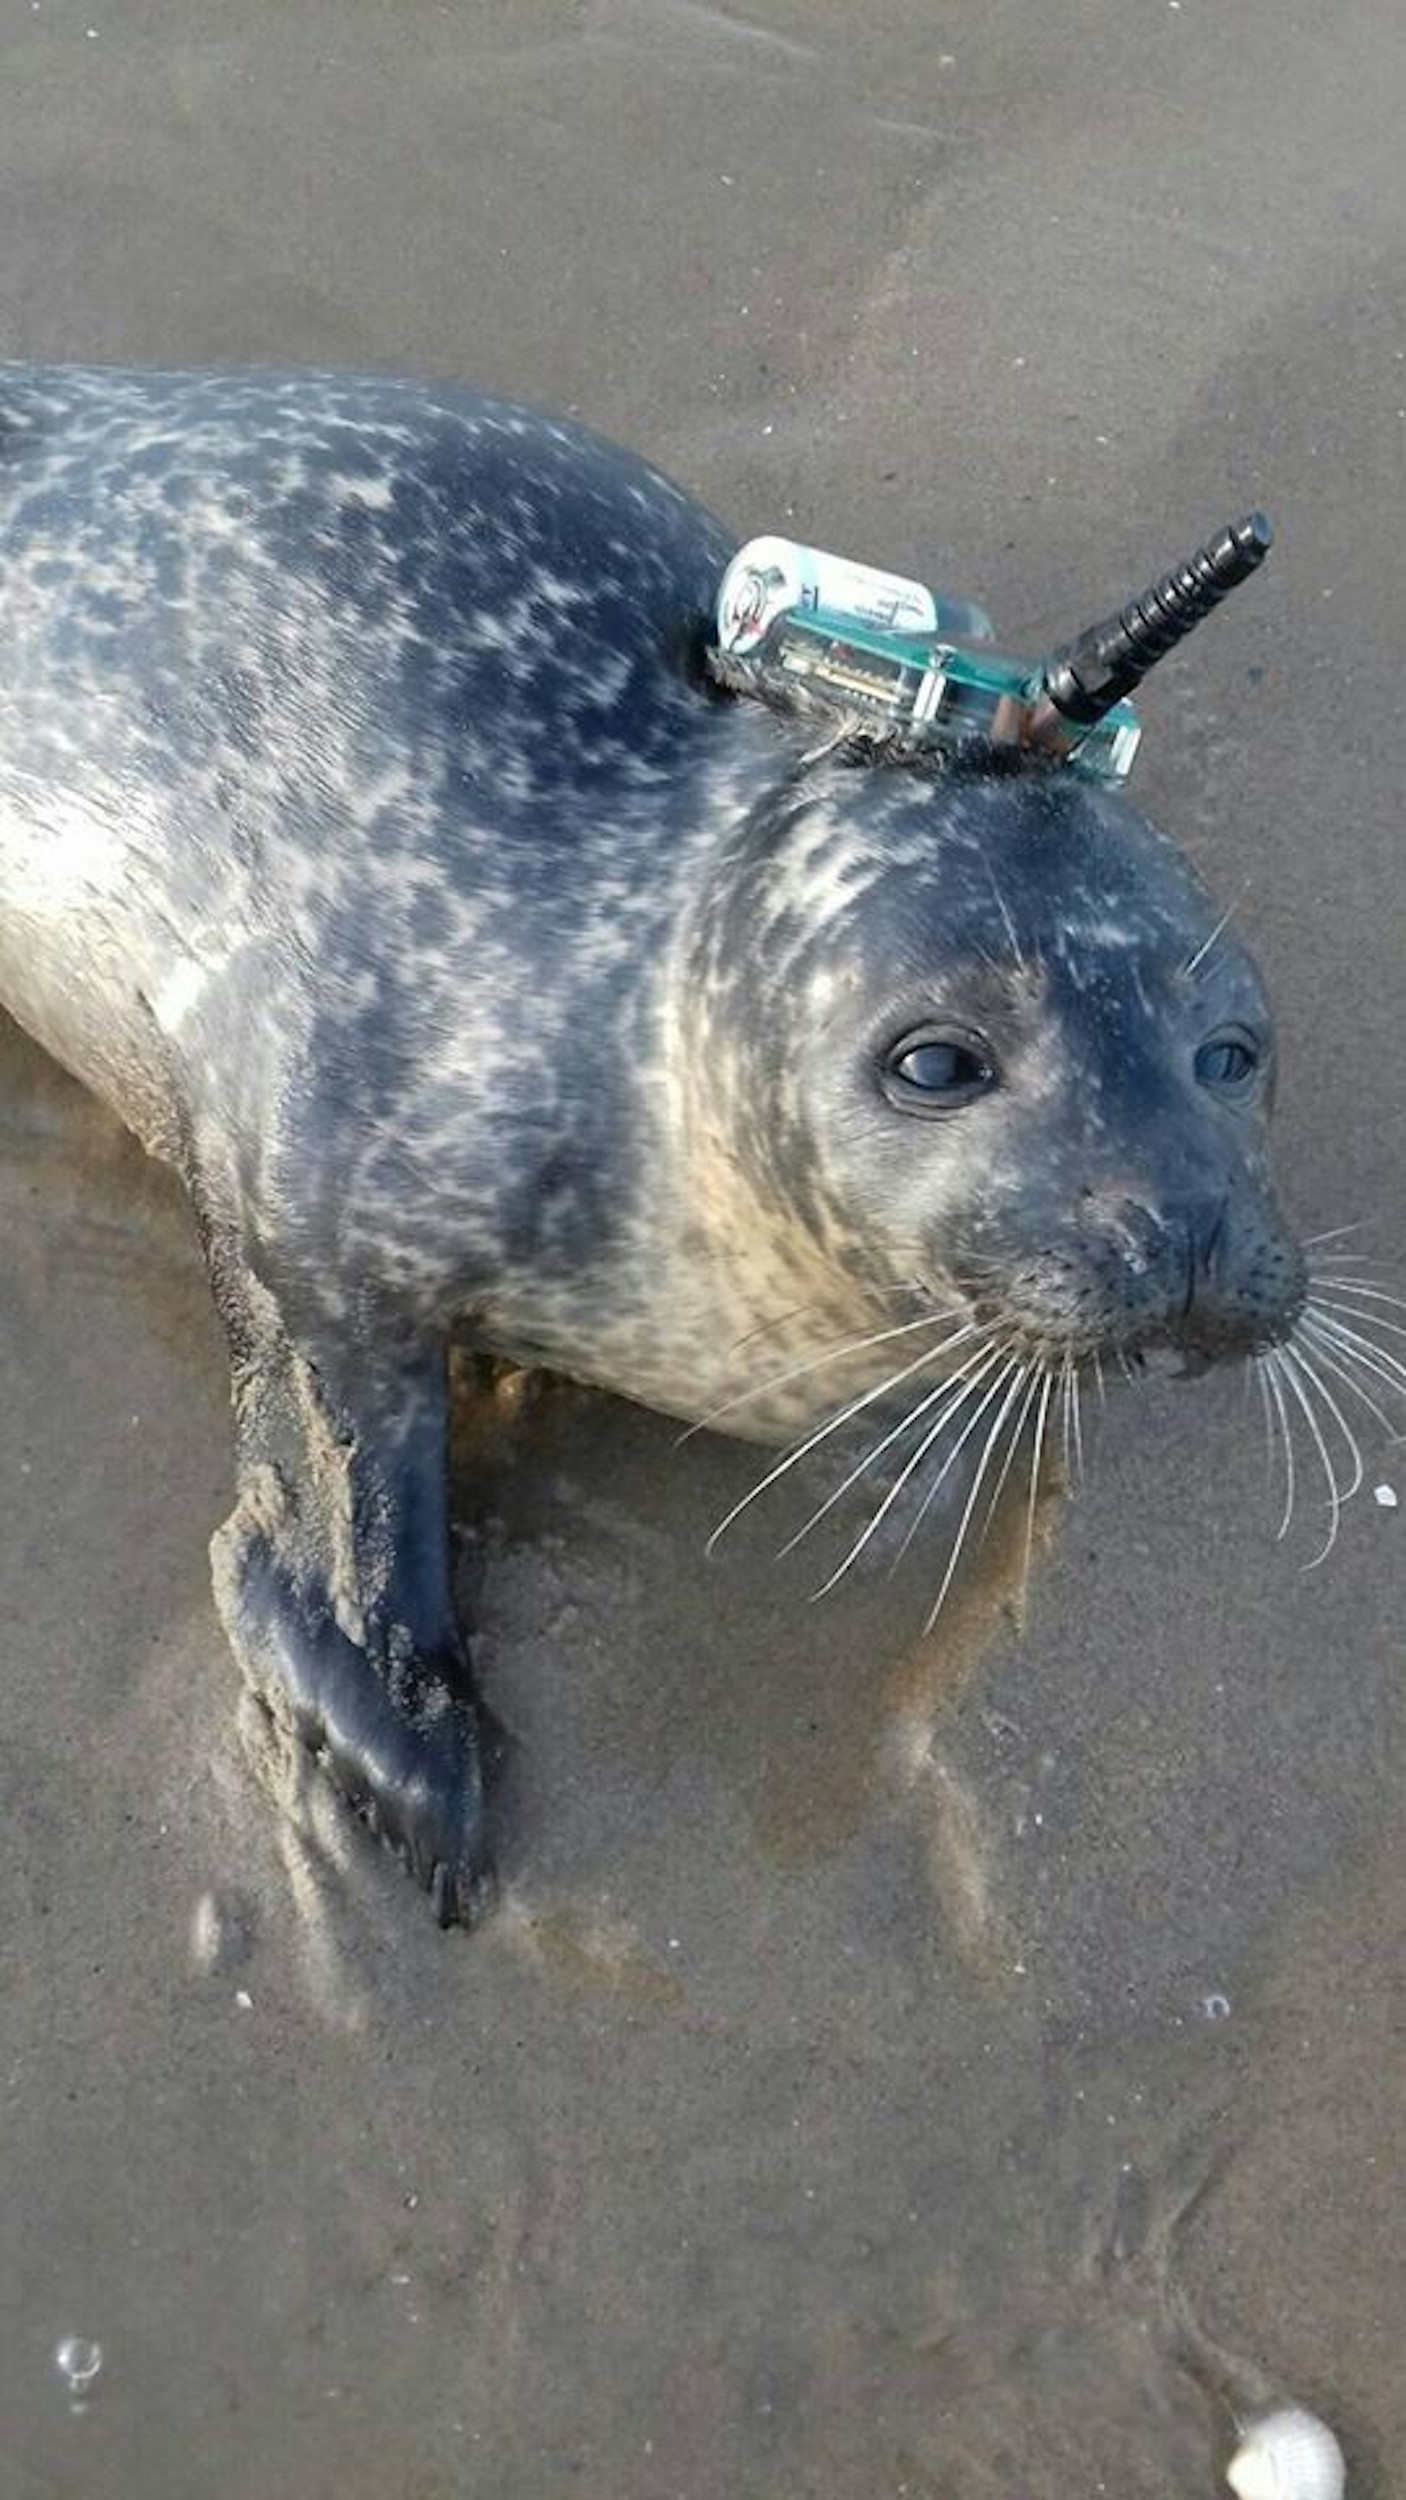 Scientist Threatened With 9mm Bullet Between Eyes After Seal Found Lost On Beach With Tracking Device Attached To Neck Deadline News